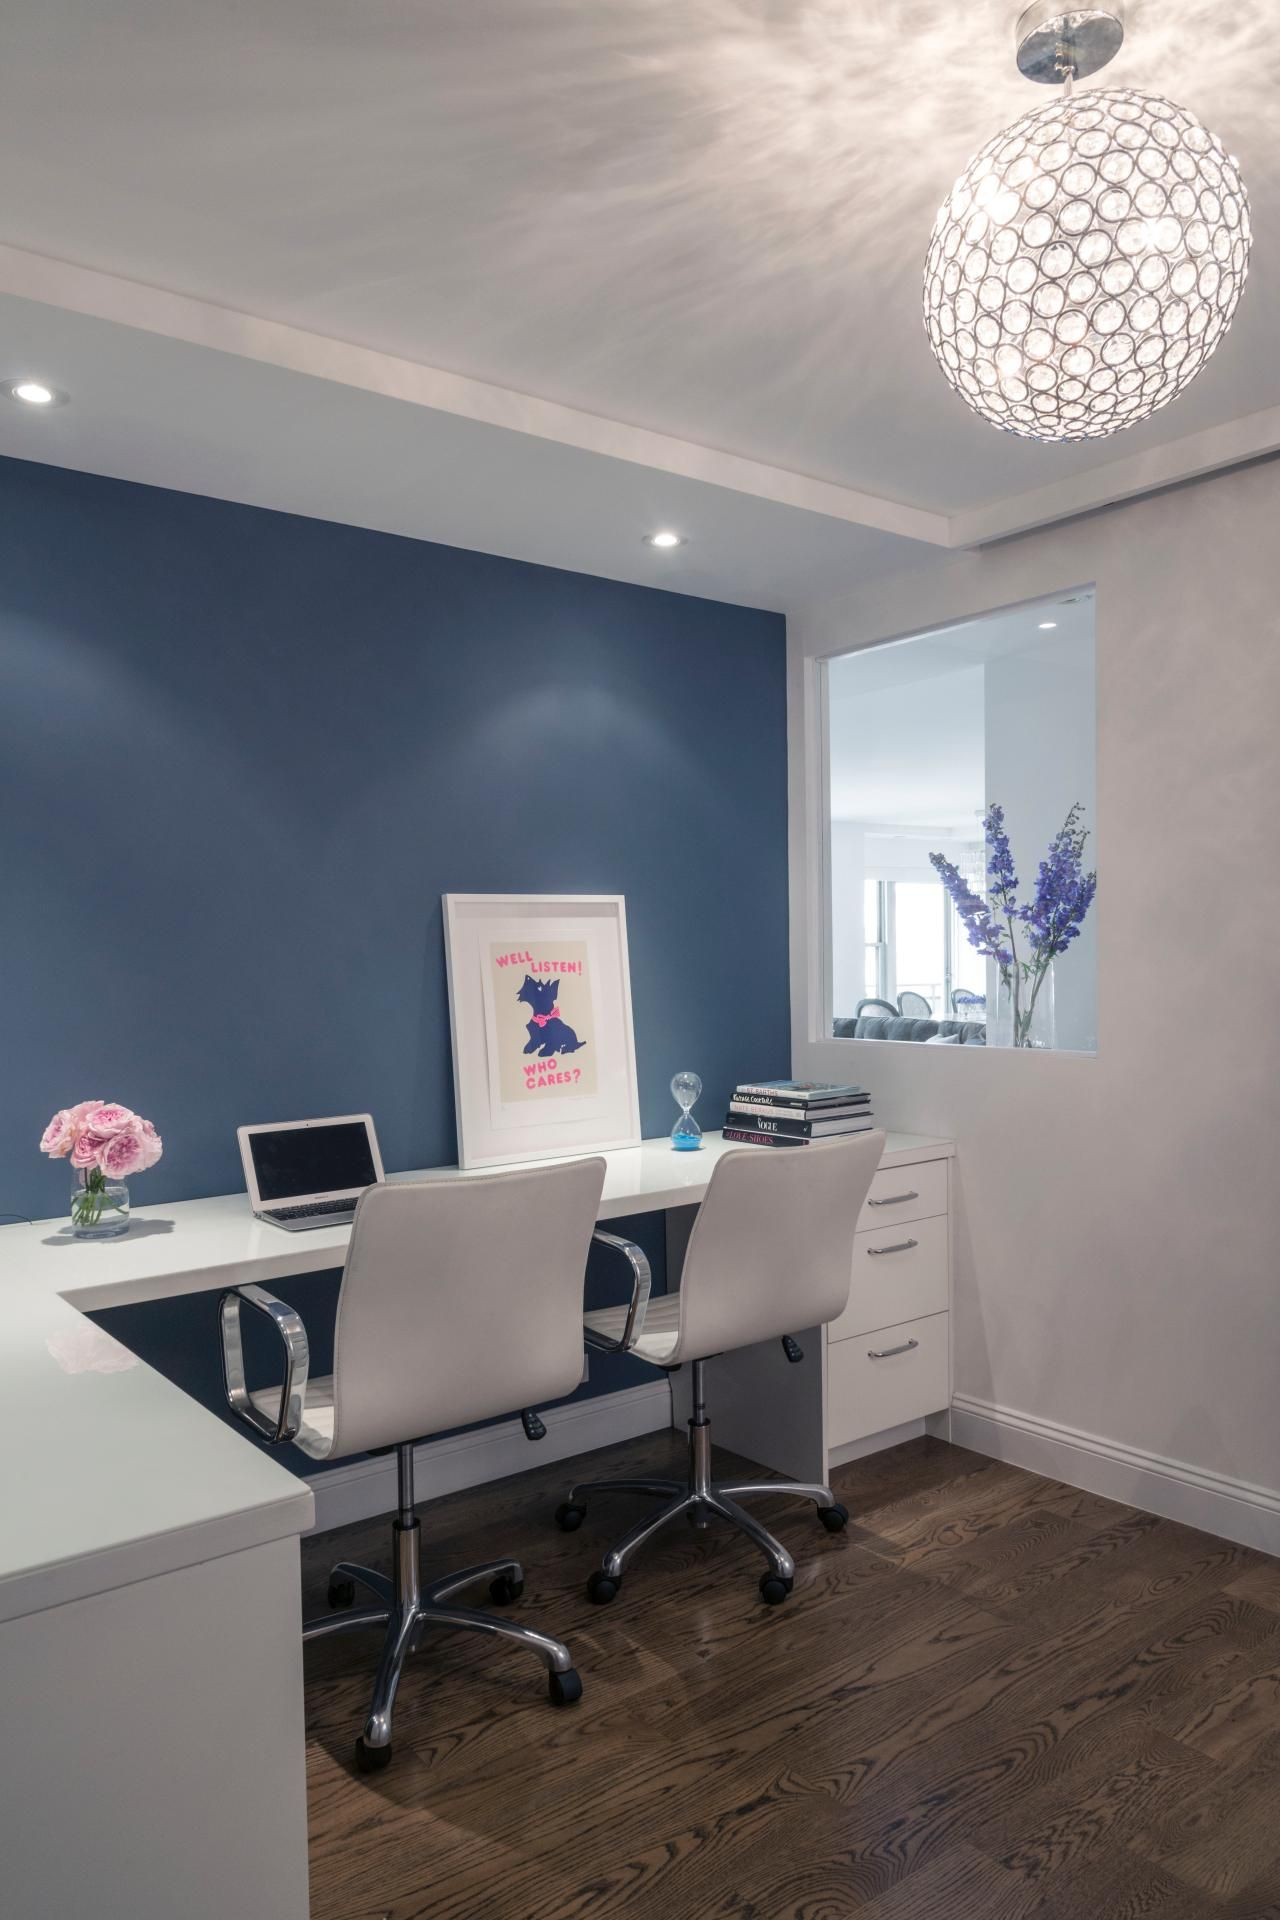 This Modern Home Office Features A White Desk With Two White